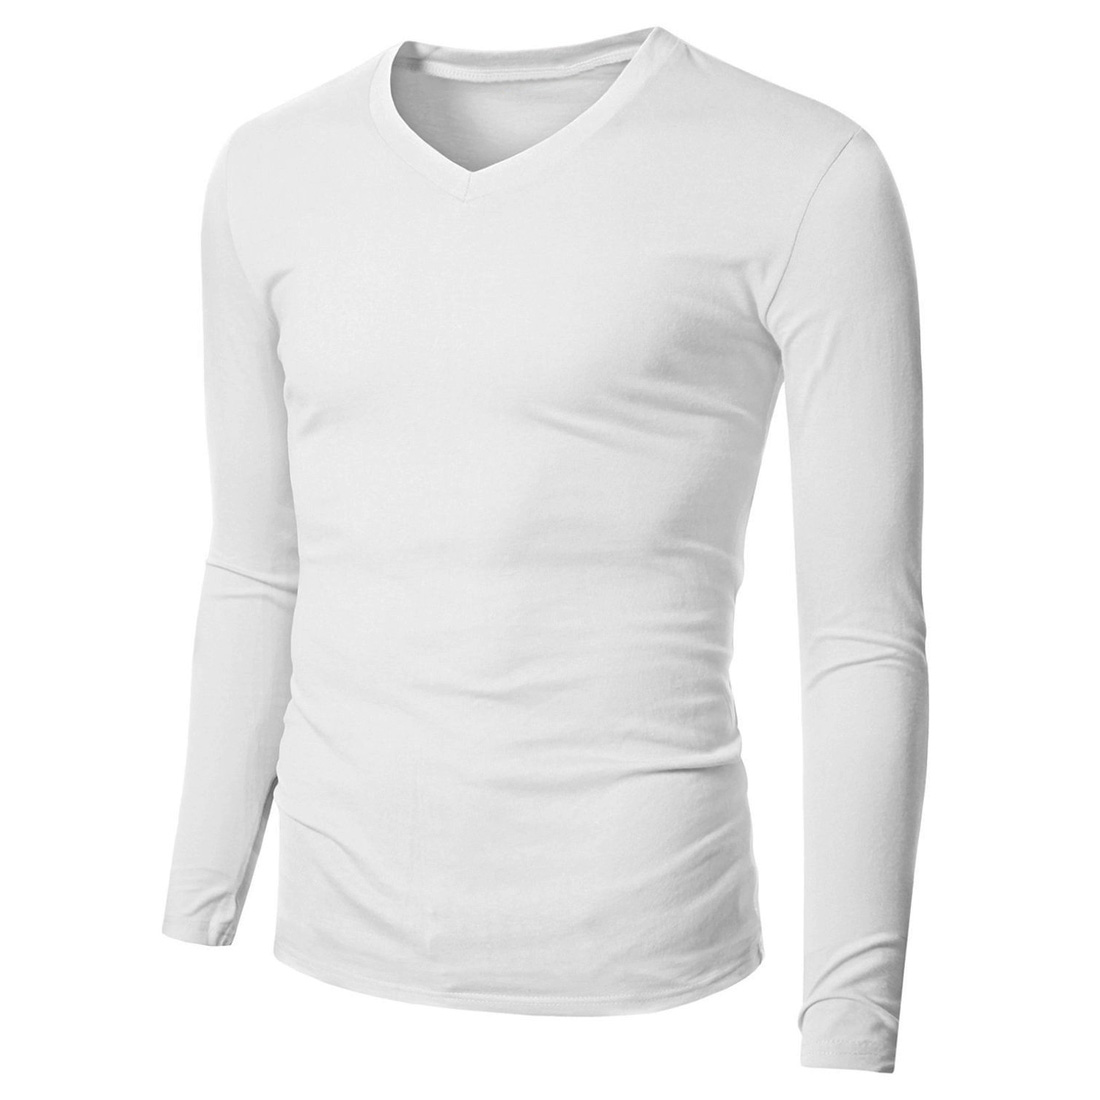 100 cotton mens slim basic tee t shirt long sleeve v neck Mens long sleeve white t shirt